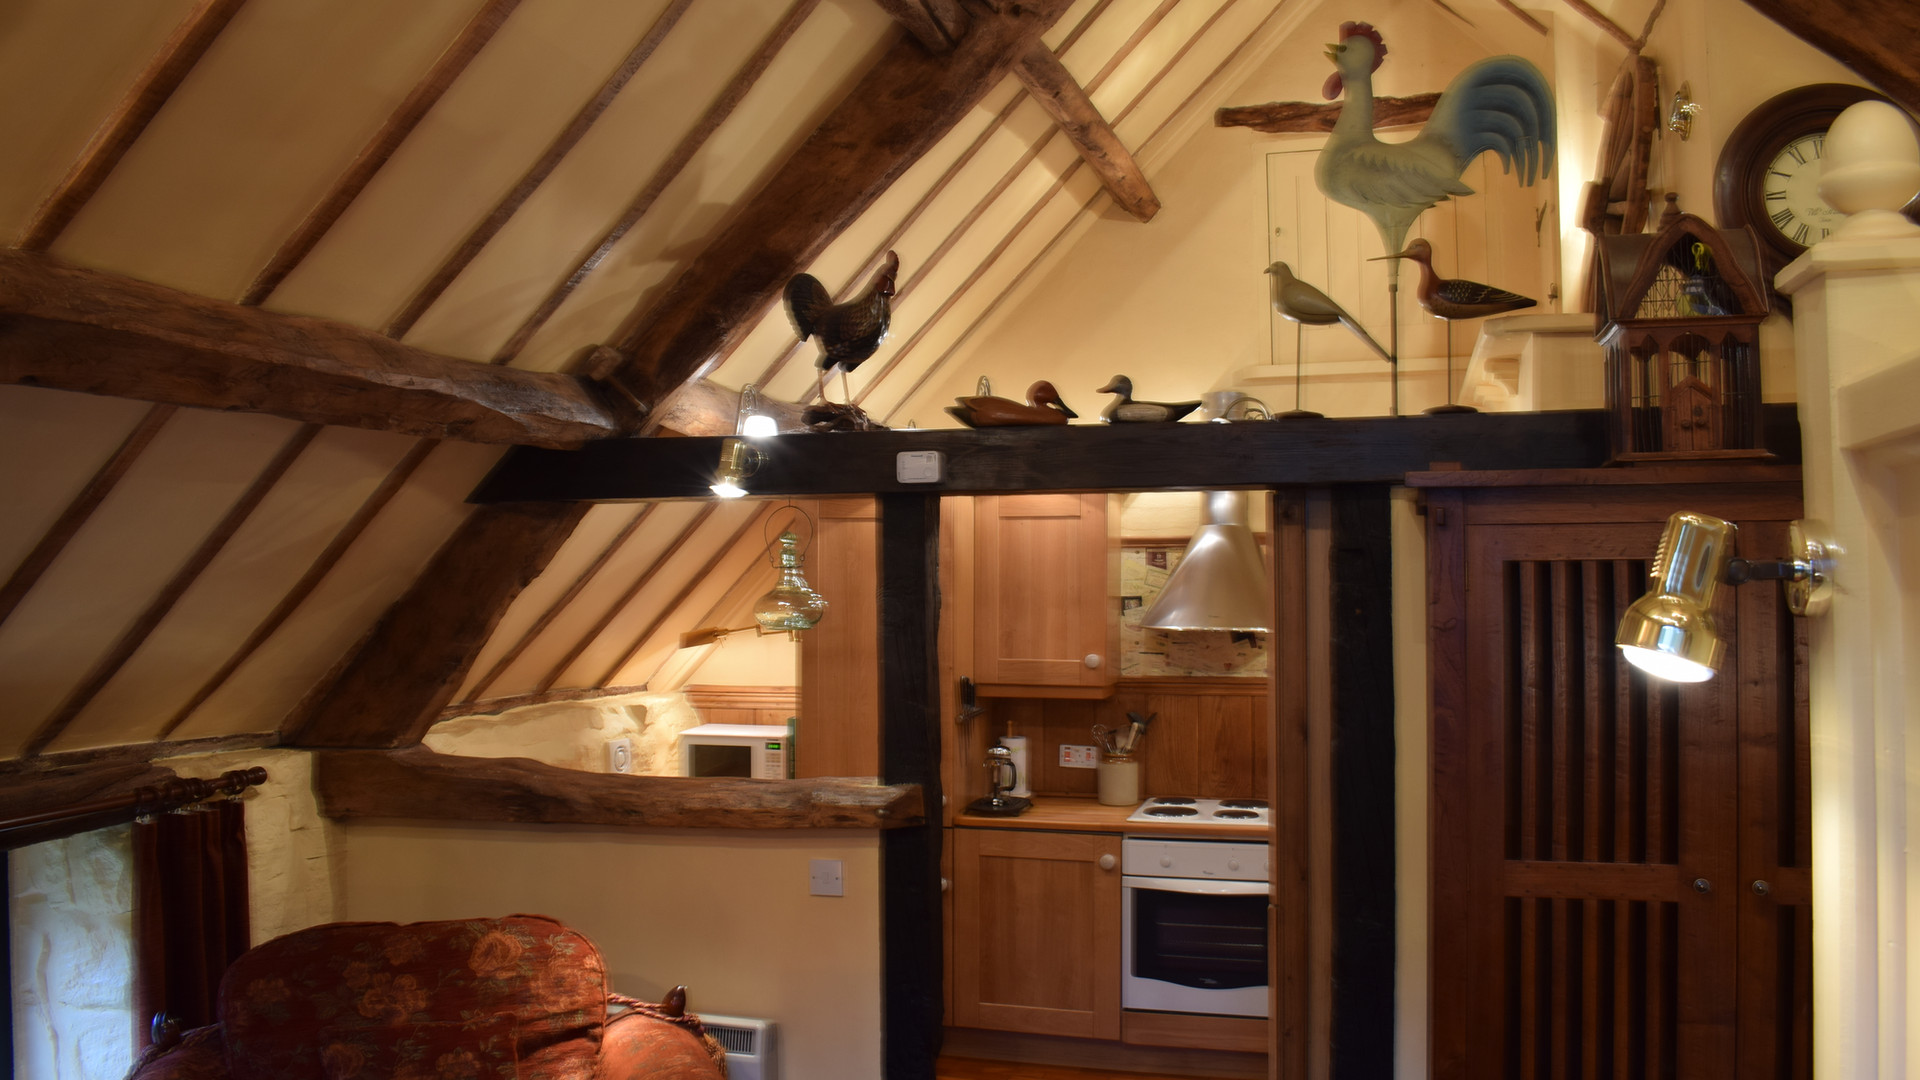 Kitchen and Sitting Area of The Hayloft Studio Holiday Cottage, Red House Farm  Glaisdale